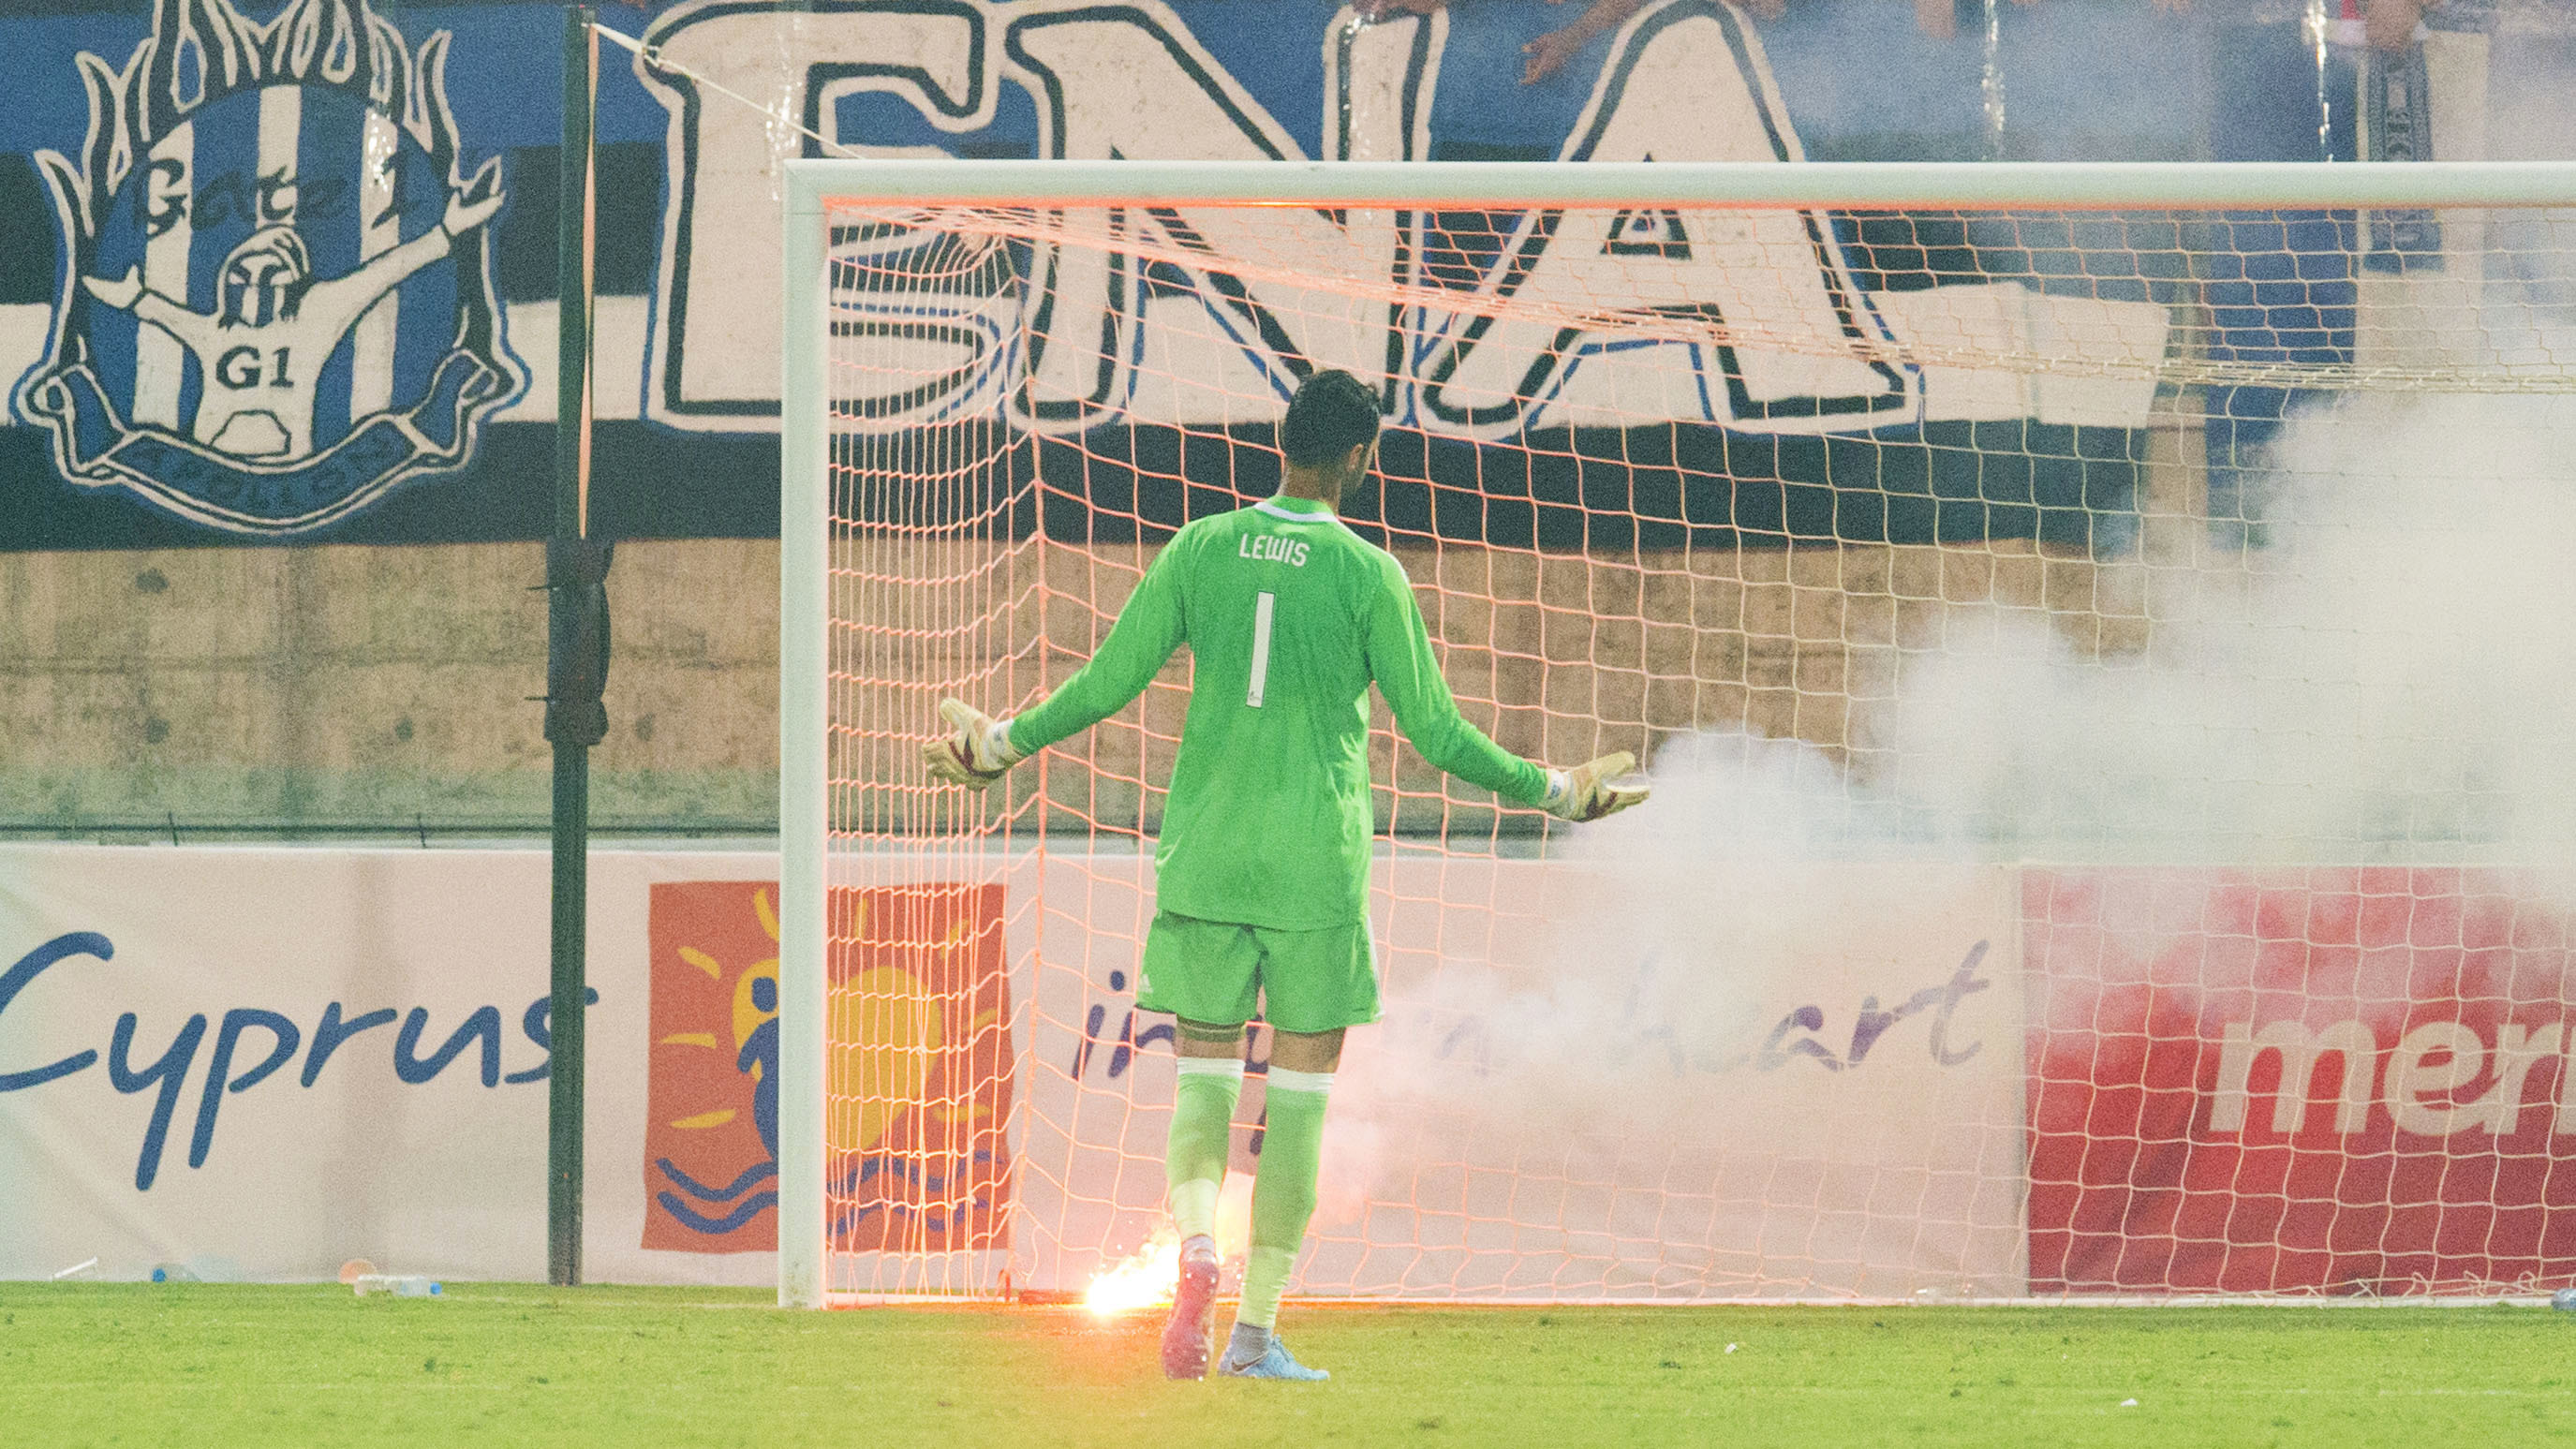 Aberdeen goalkeeper Joe Lewis in action while a flare is on the pitch.